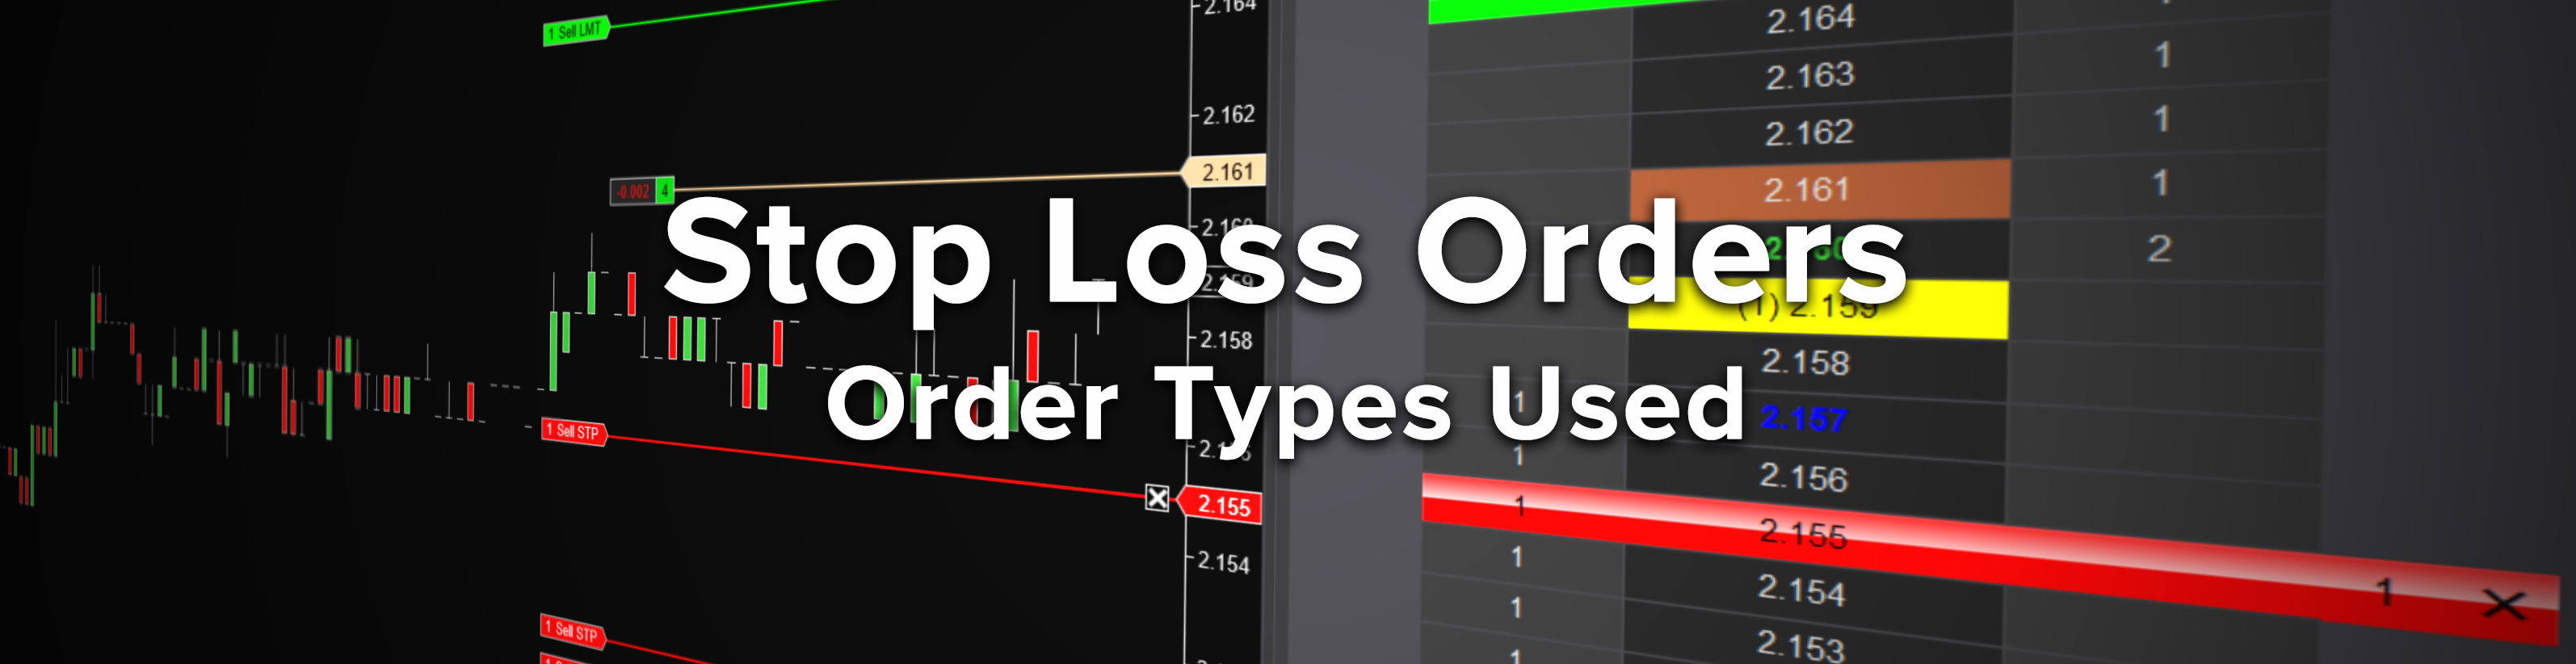 stop loss orders types